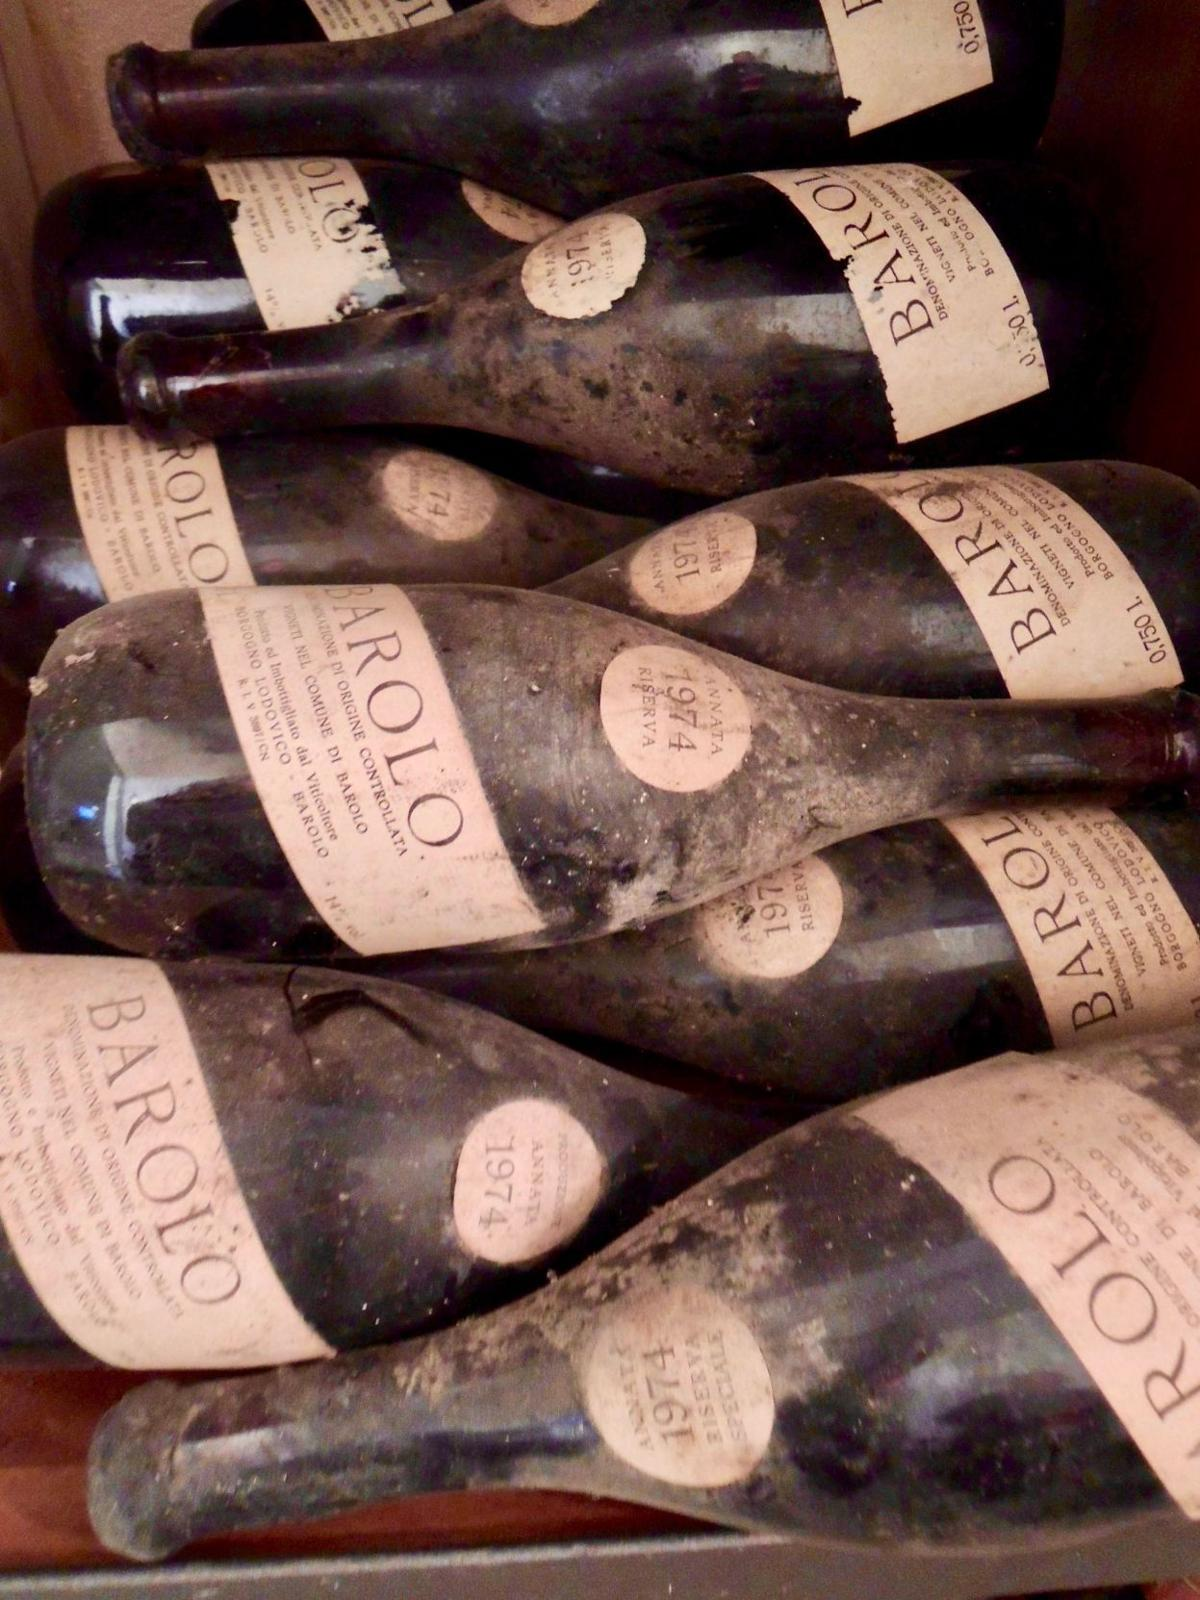 Decades old bottles of Barolo